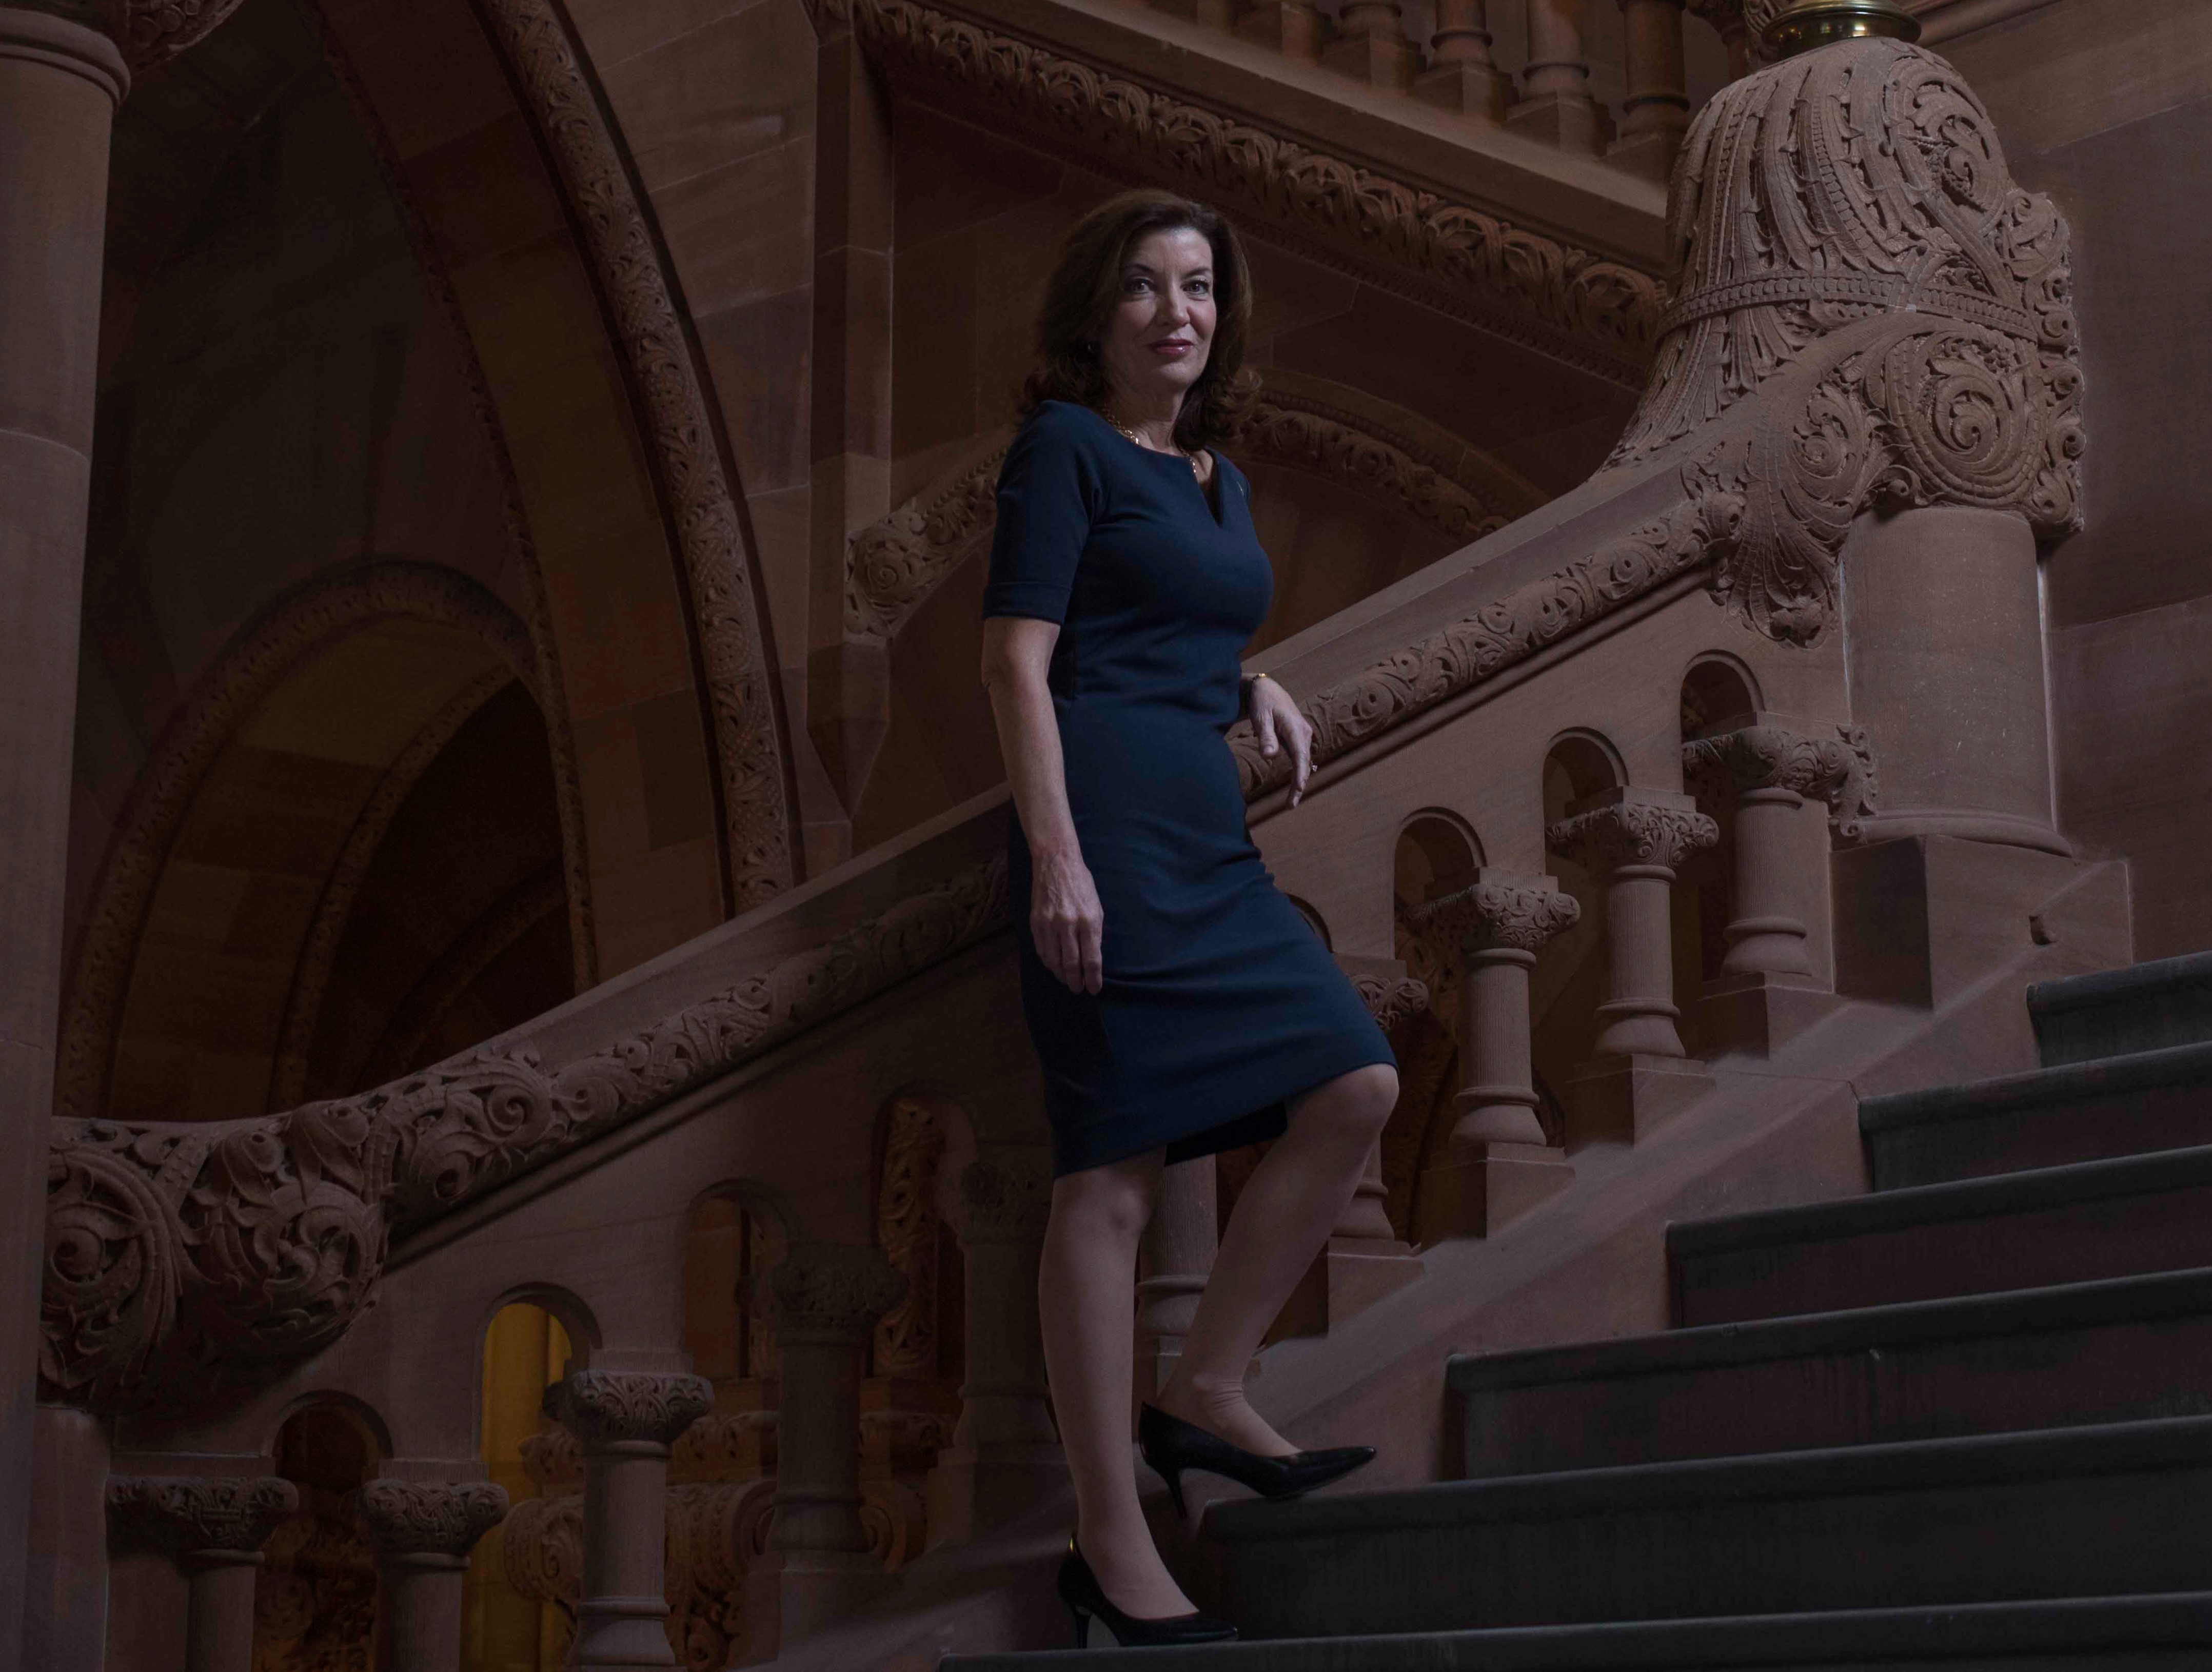 Lt. Gov. Kathy Hochul on the Million Dollar Staircase at the state Capitol in Albany